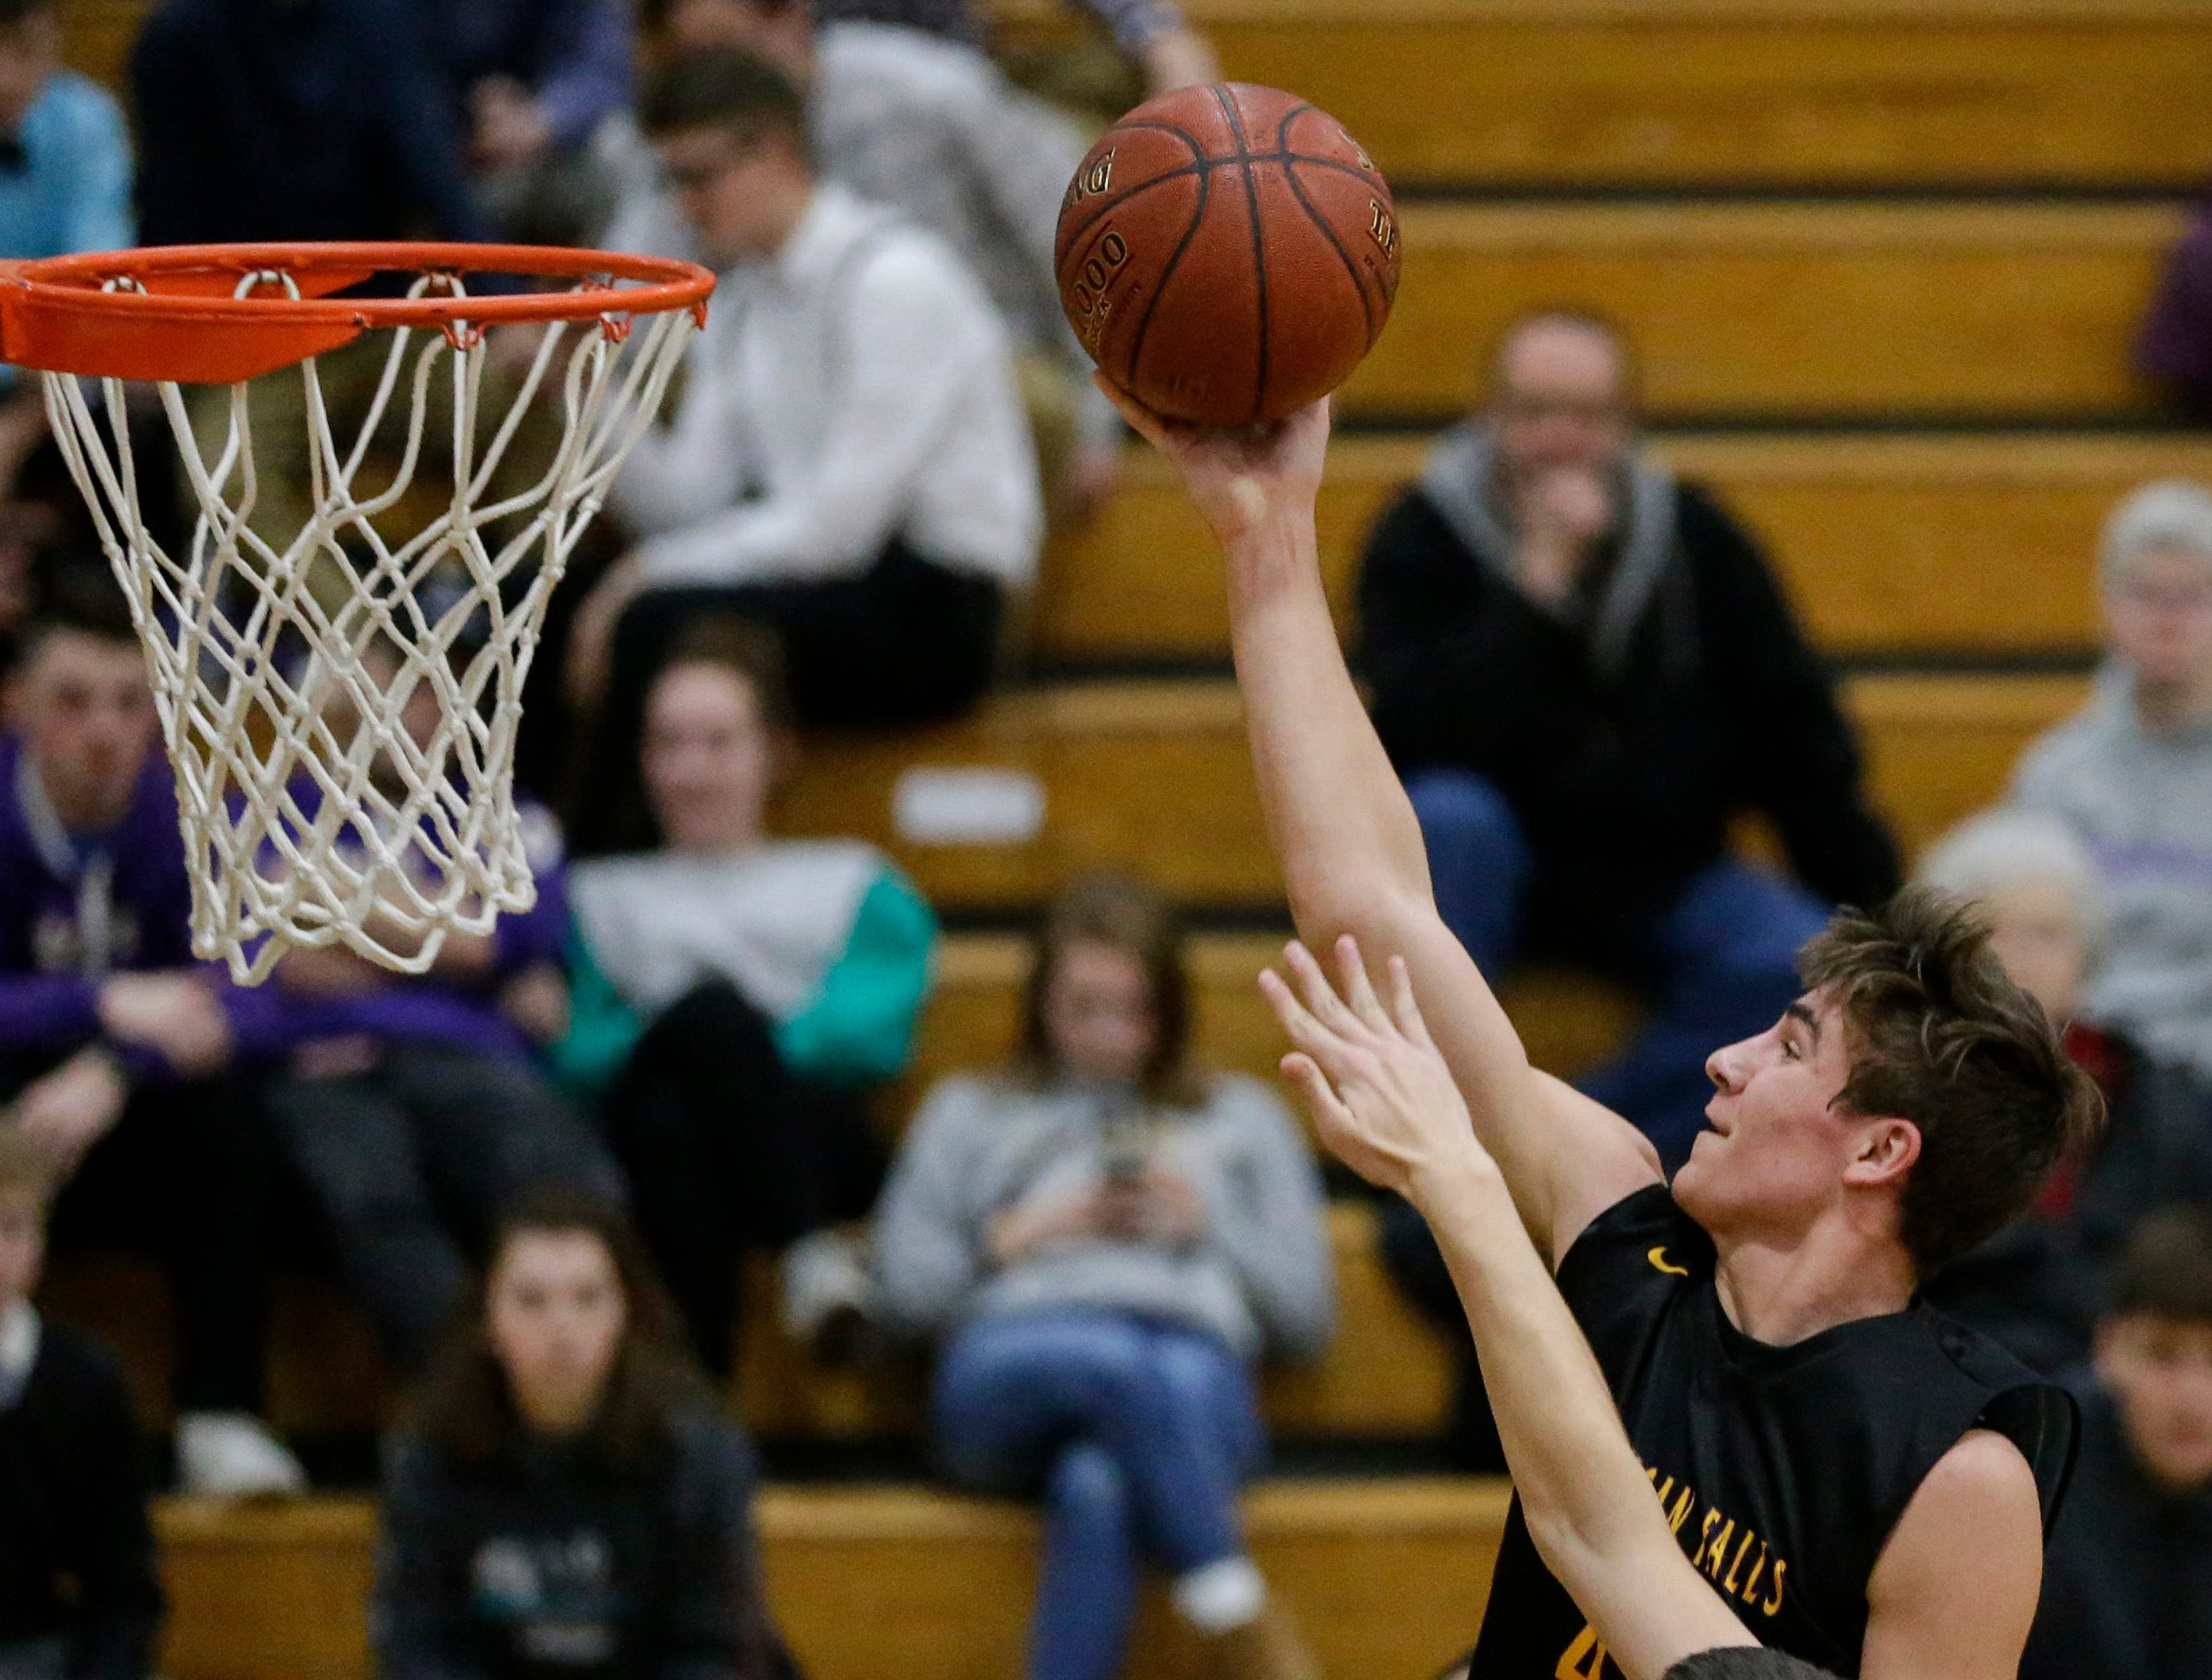 Sheboygan Falls' Jonathan Bassuener (4) takes it to the hoop against Two Rivers during an Eastern Wisconsin Conference game at Two Rivers High School Tuesday, December 4, 2018, in Two Rivers, Wis. Joshua Clark/USA TODAY NETWORK-Wisconsin